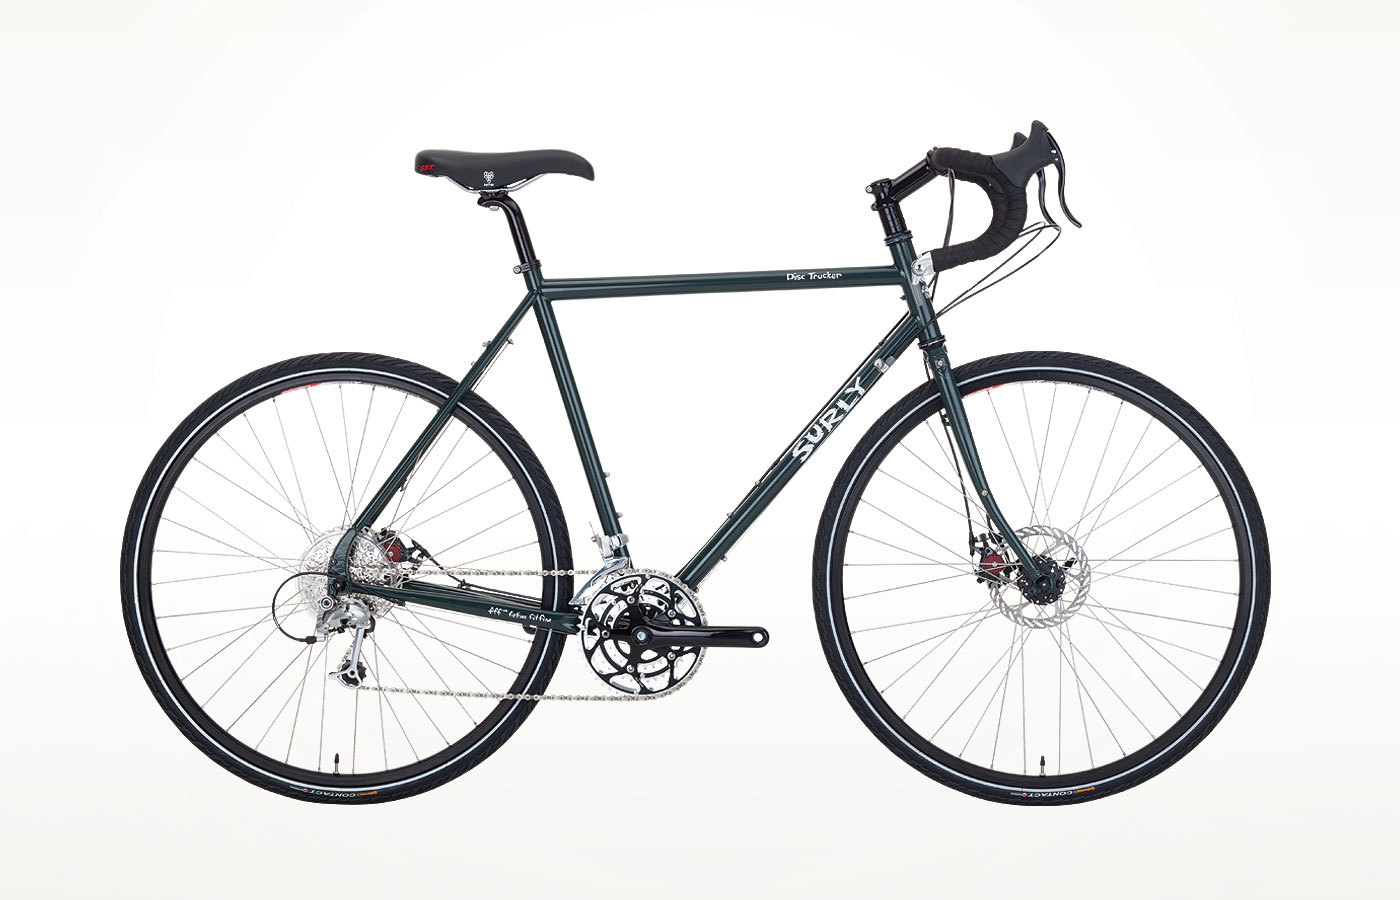 Surly Disc Trucker - 700c